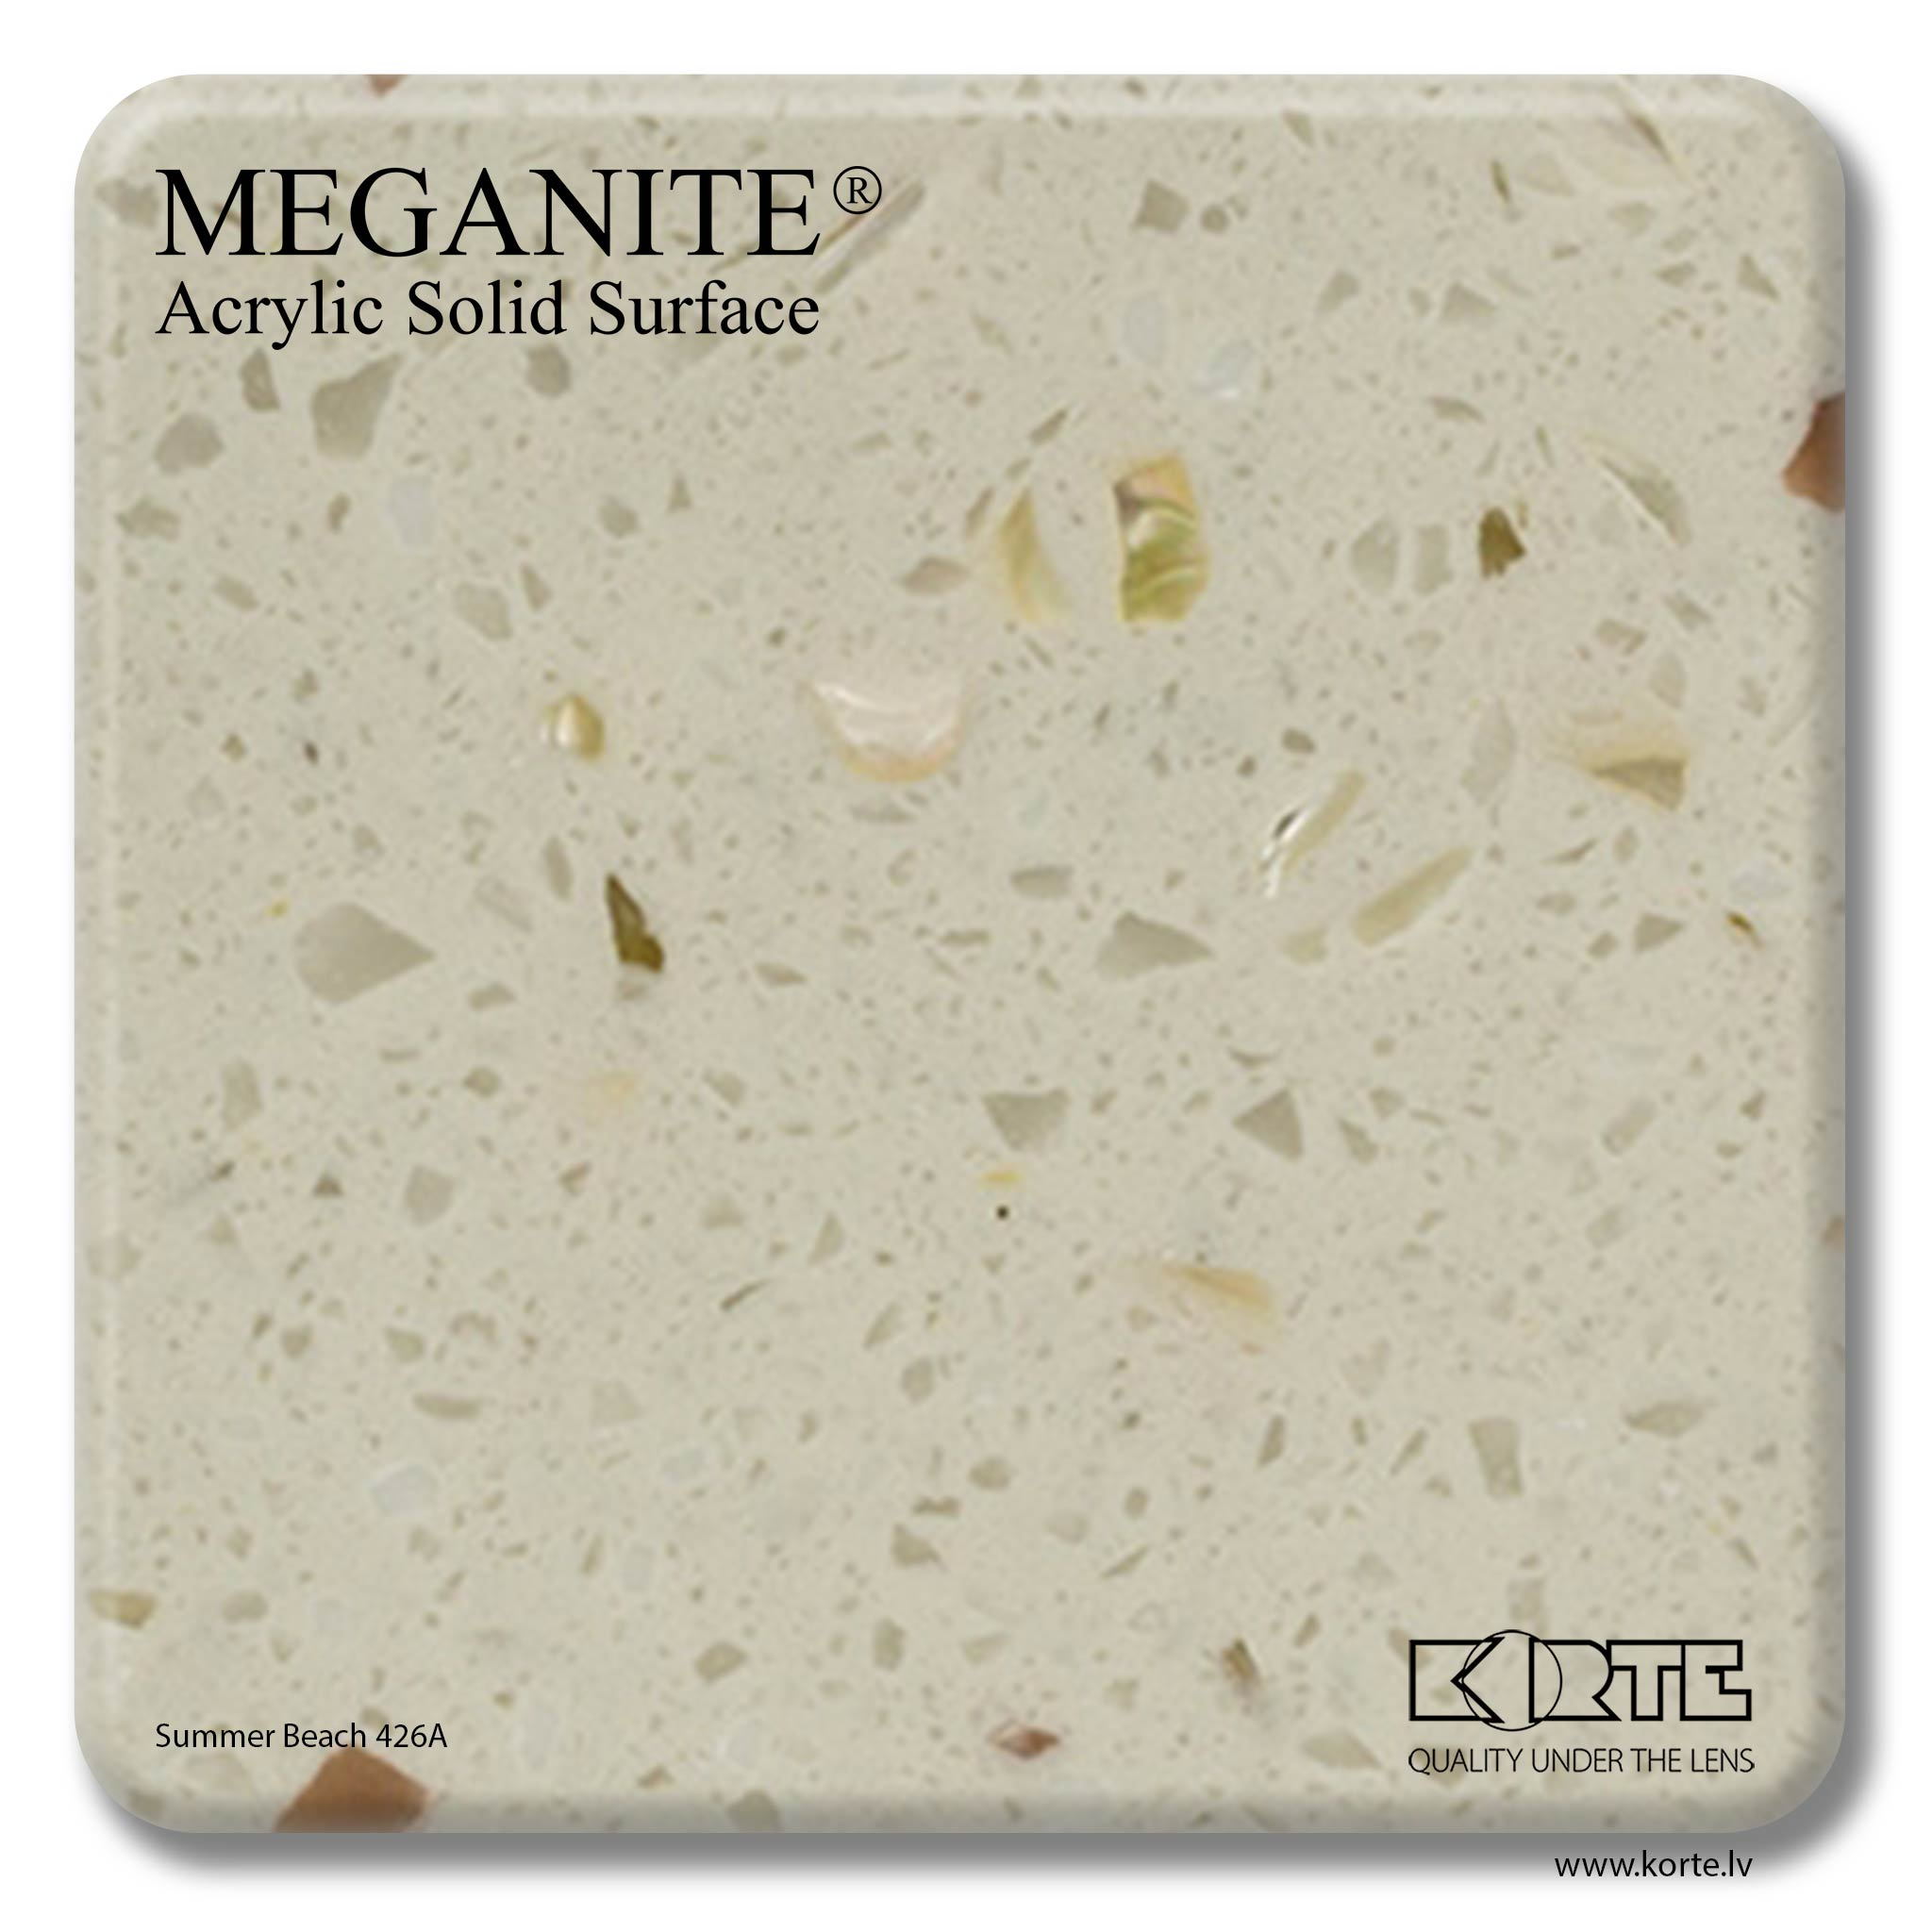 Meganite Summer Beach 426A